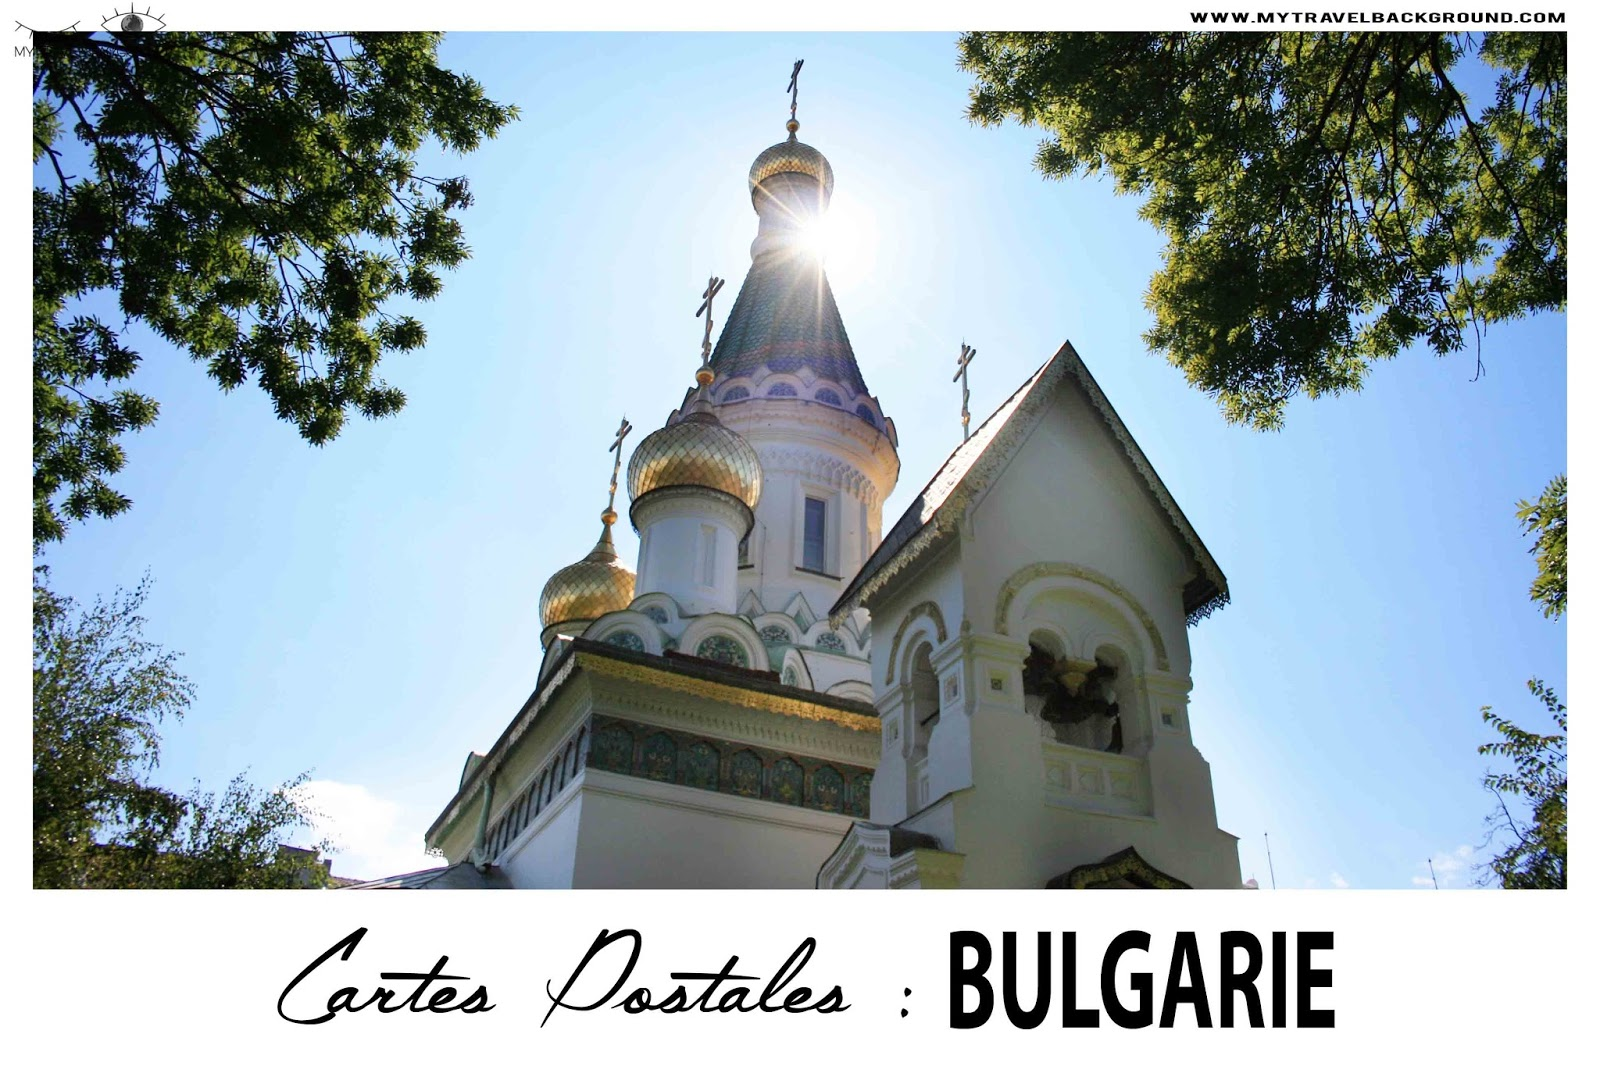 My Travel Background : cartes postales de Bulgarie